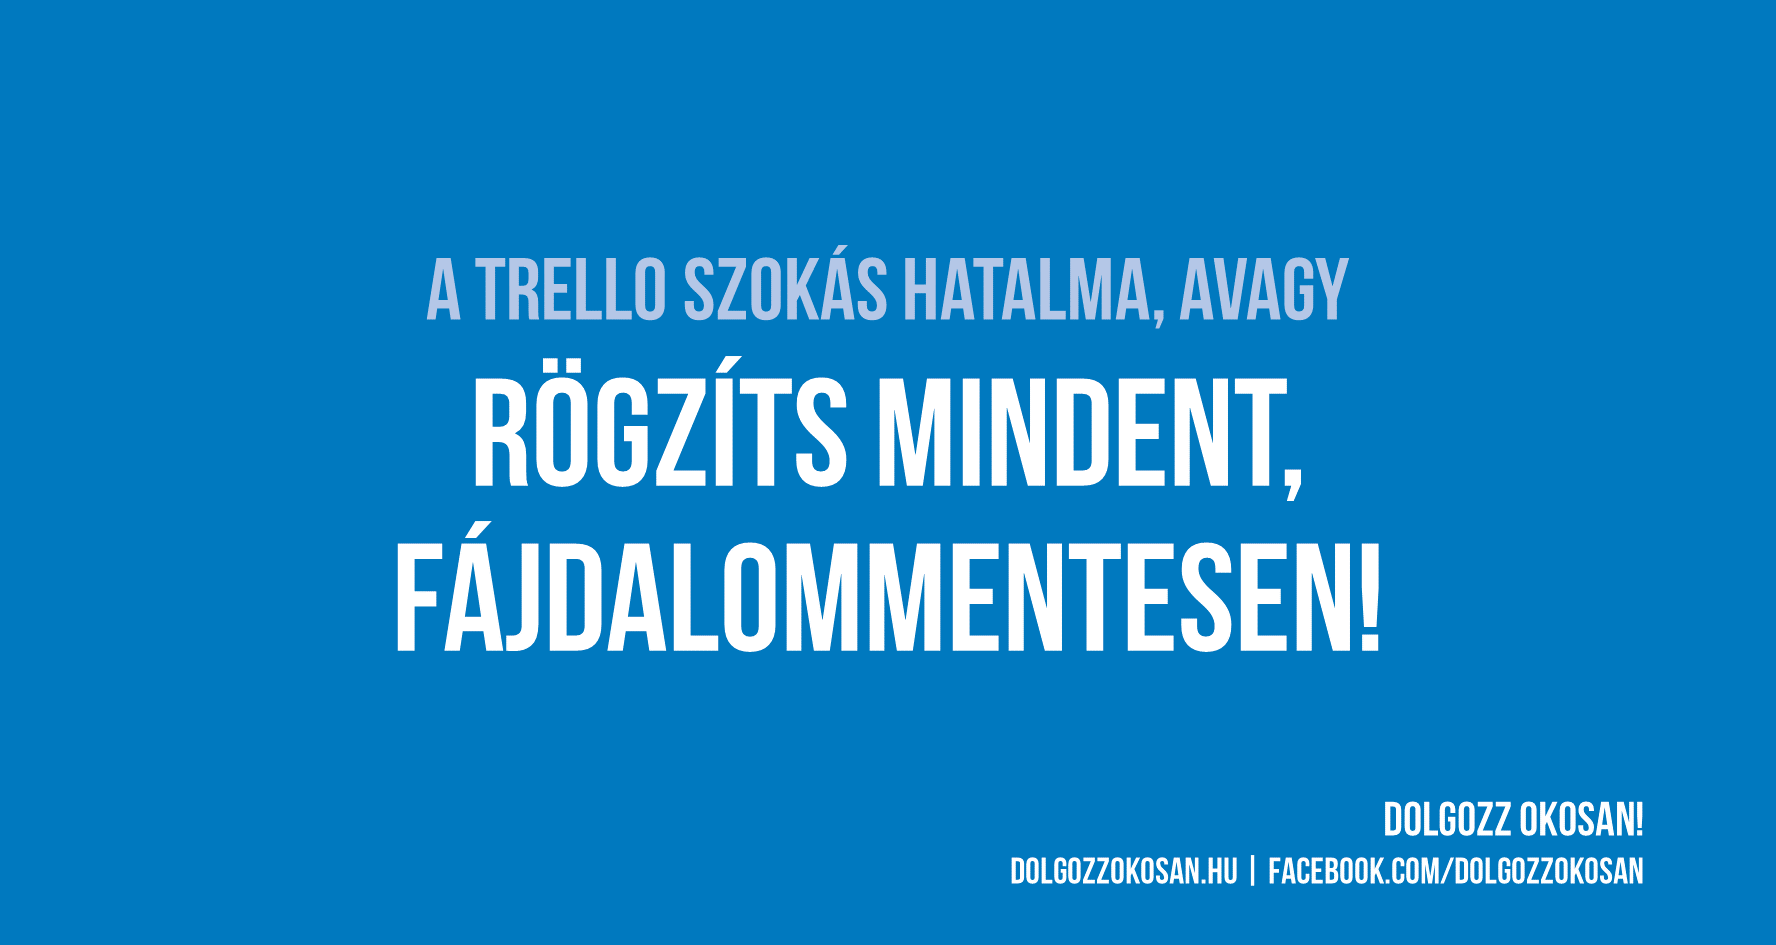 A Trello szokás hatalma